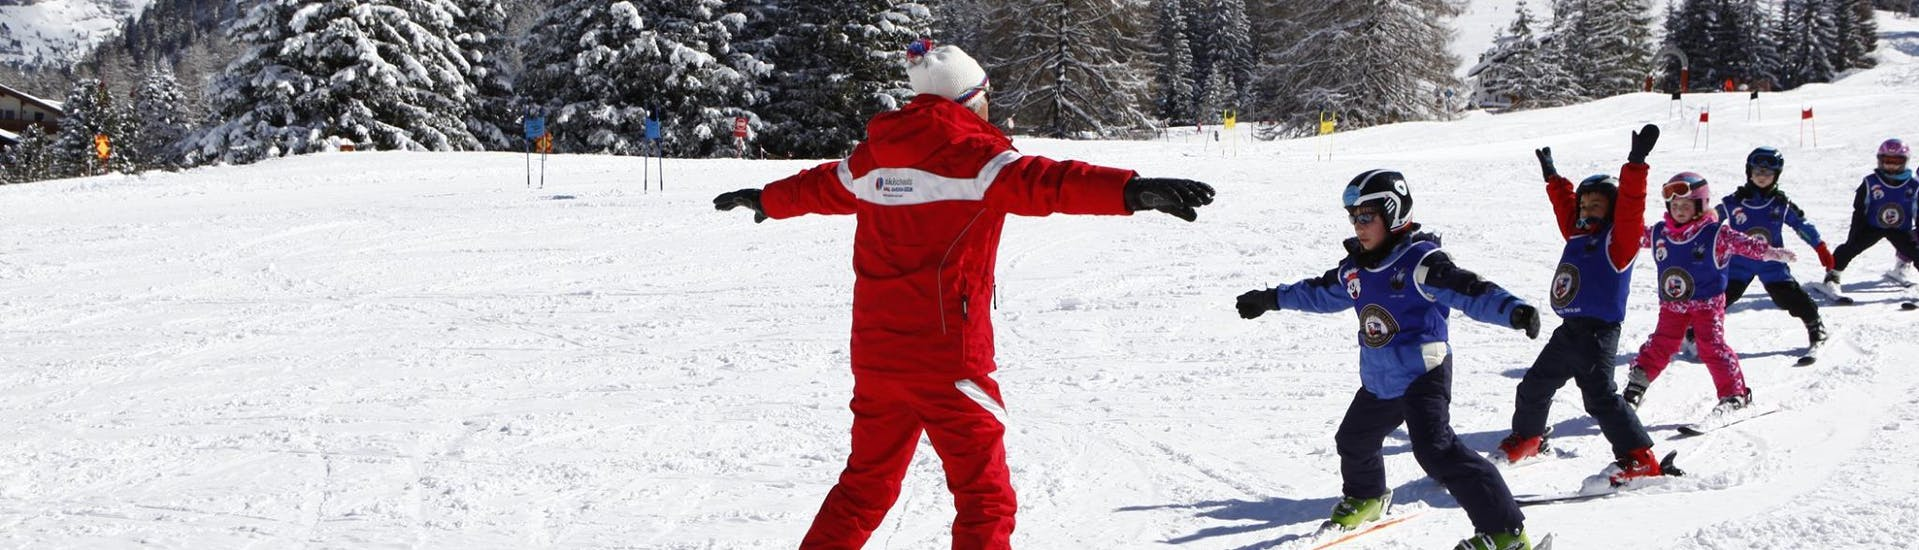 Kids Ski Lessons (2.5-4 y.) for Beginners with Ski and Snowboard School Selva Val Gardena - Hero image